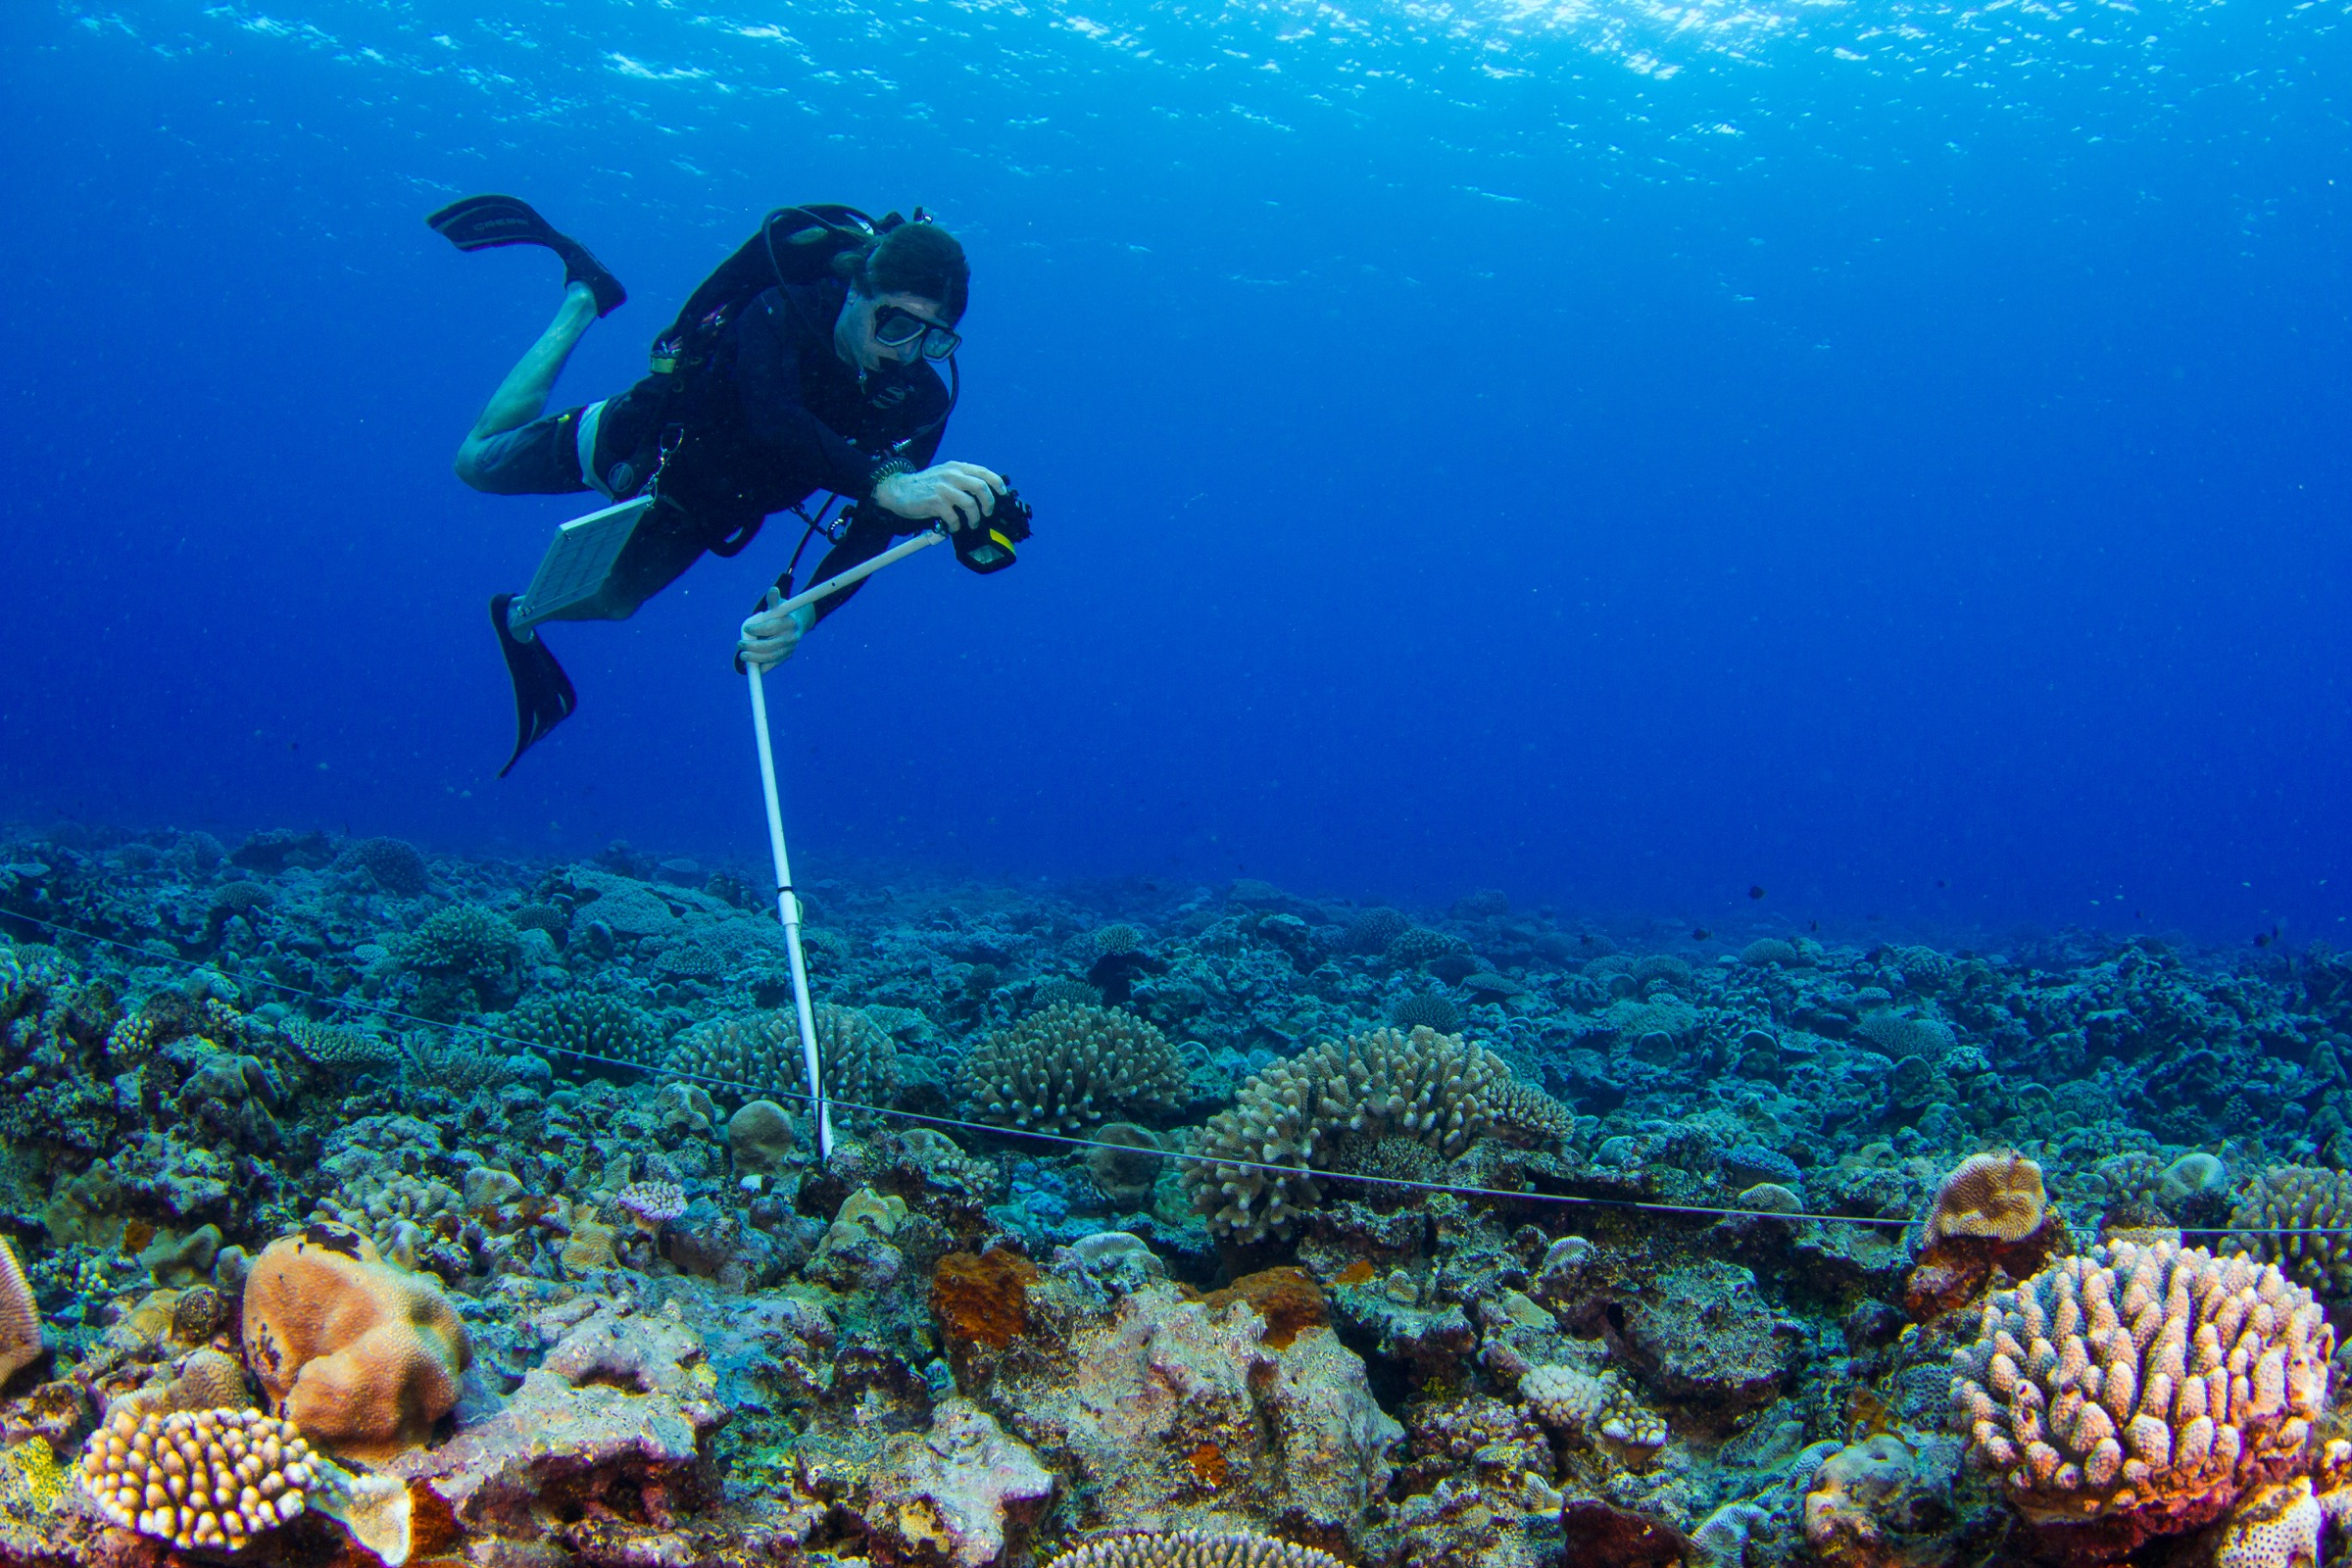 Stuart Sandin conducts a photoquad survey, taking images of the reef at regular intervals along a 25-meter (82-foot) transect. Photograph by Brian Zgliczynski/100 Island Challenge